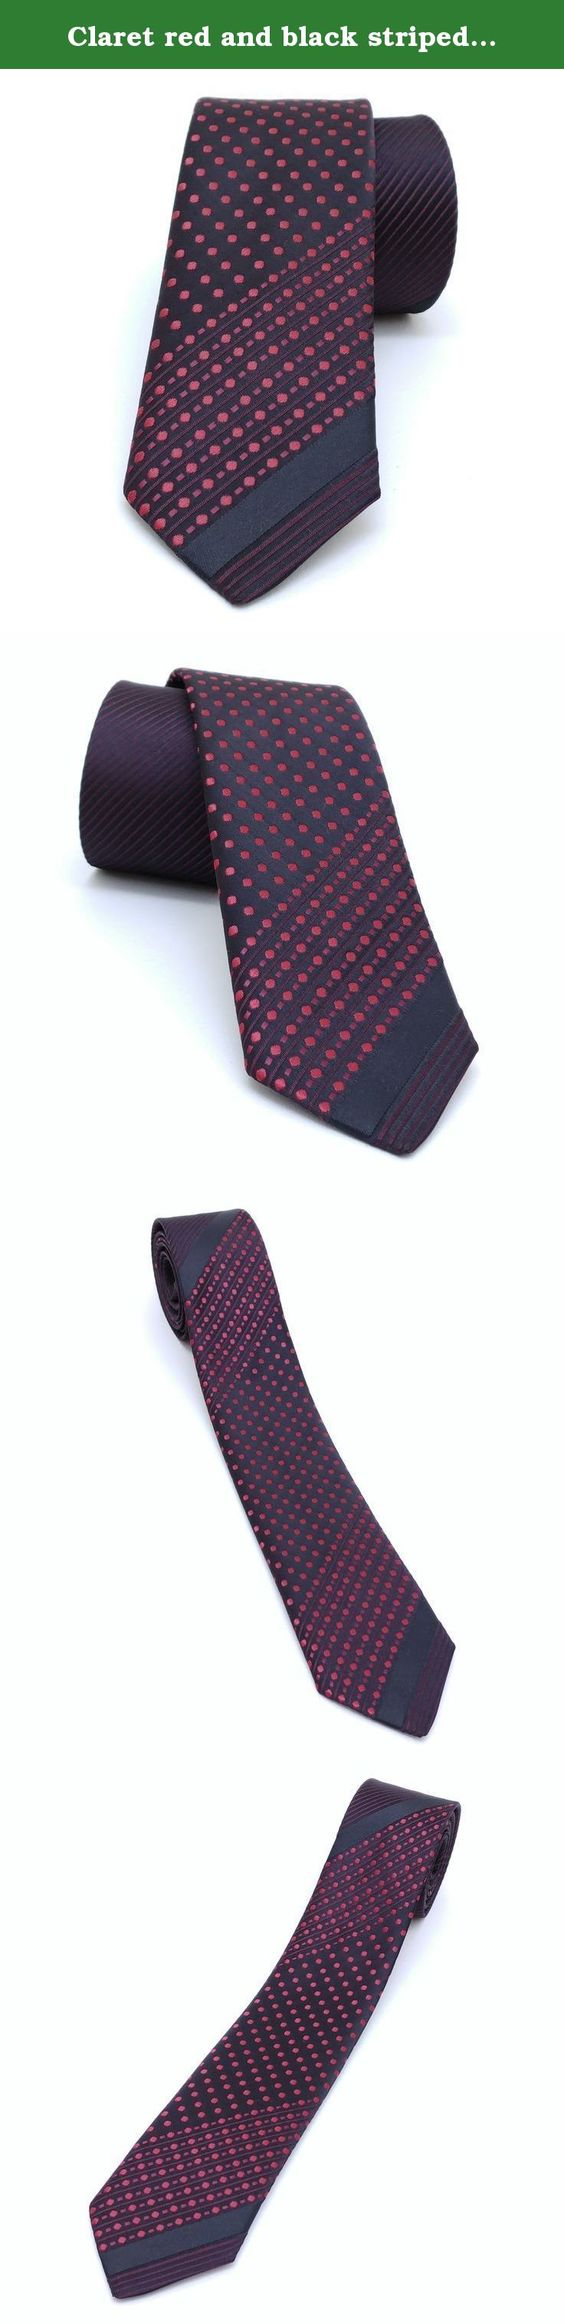 "Claret red and black striped and dotted men's tie 5,5 cm (2,17"") SL-085. Claret red and black striped and dotted men's necktie SL-085 Width : 5,5 cm (2,17"") Length : 150 cm (59,06"")."